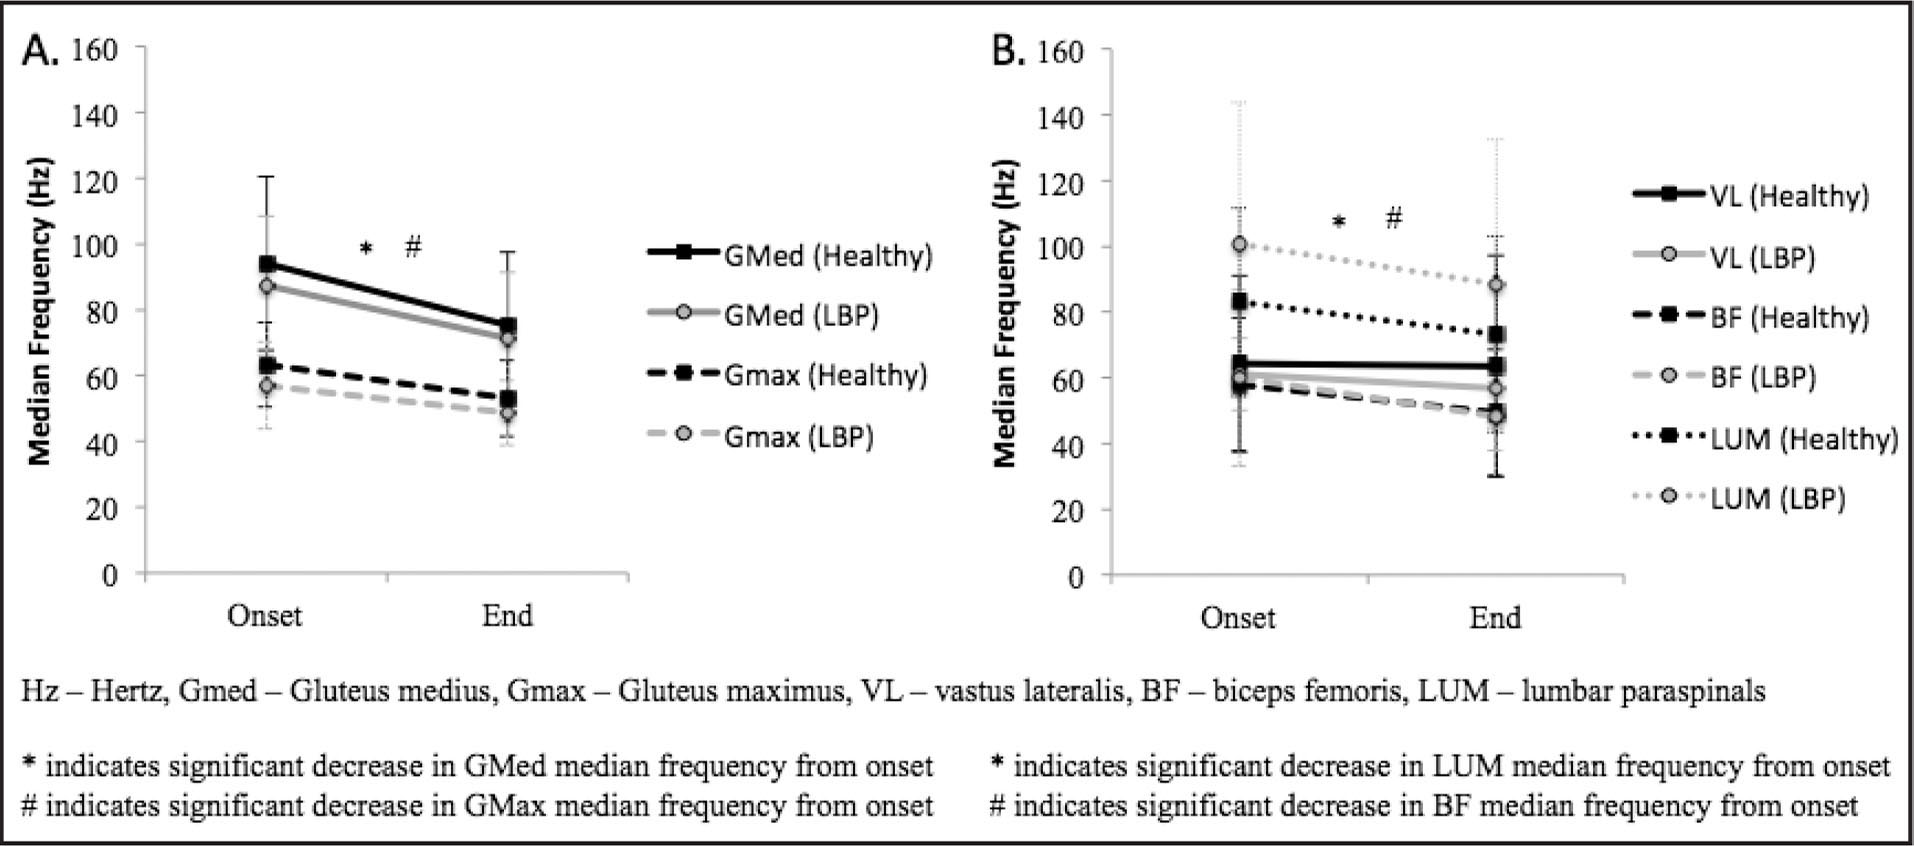 Median frequency changes during the 30-second hip abduction exercise for (A) gluteus medius and gluteus maximus muscles and (B) vastus lateralis, biceps femoris, and lumbar paraspinals muscles. LBP = low back pain